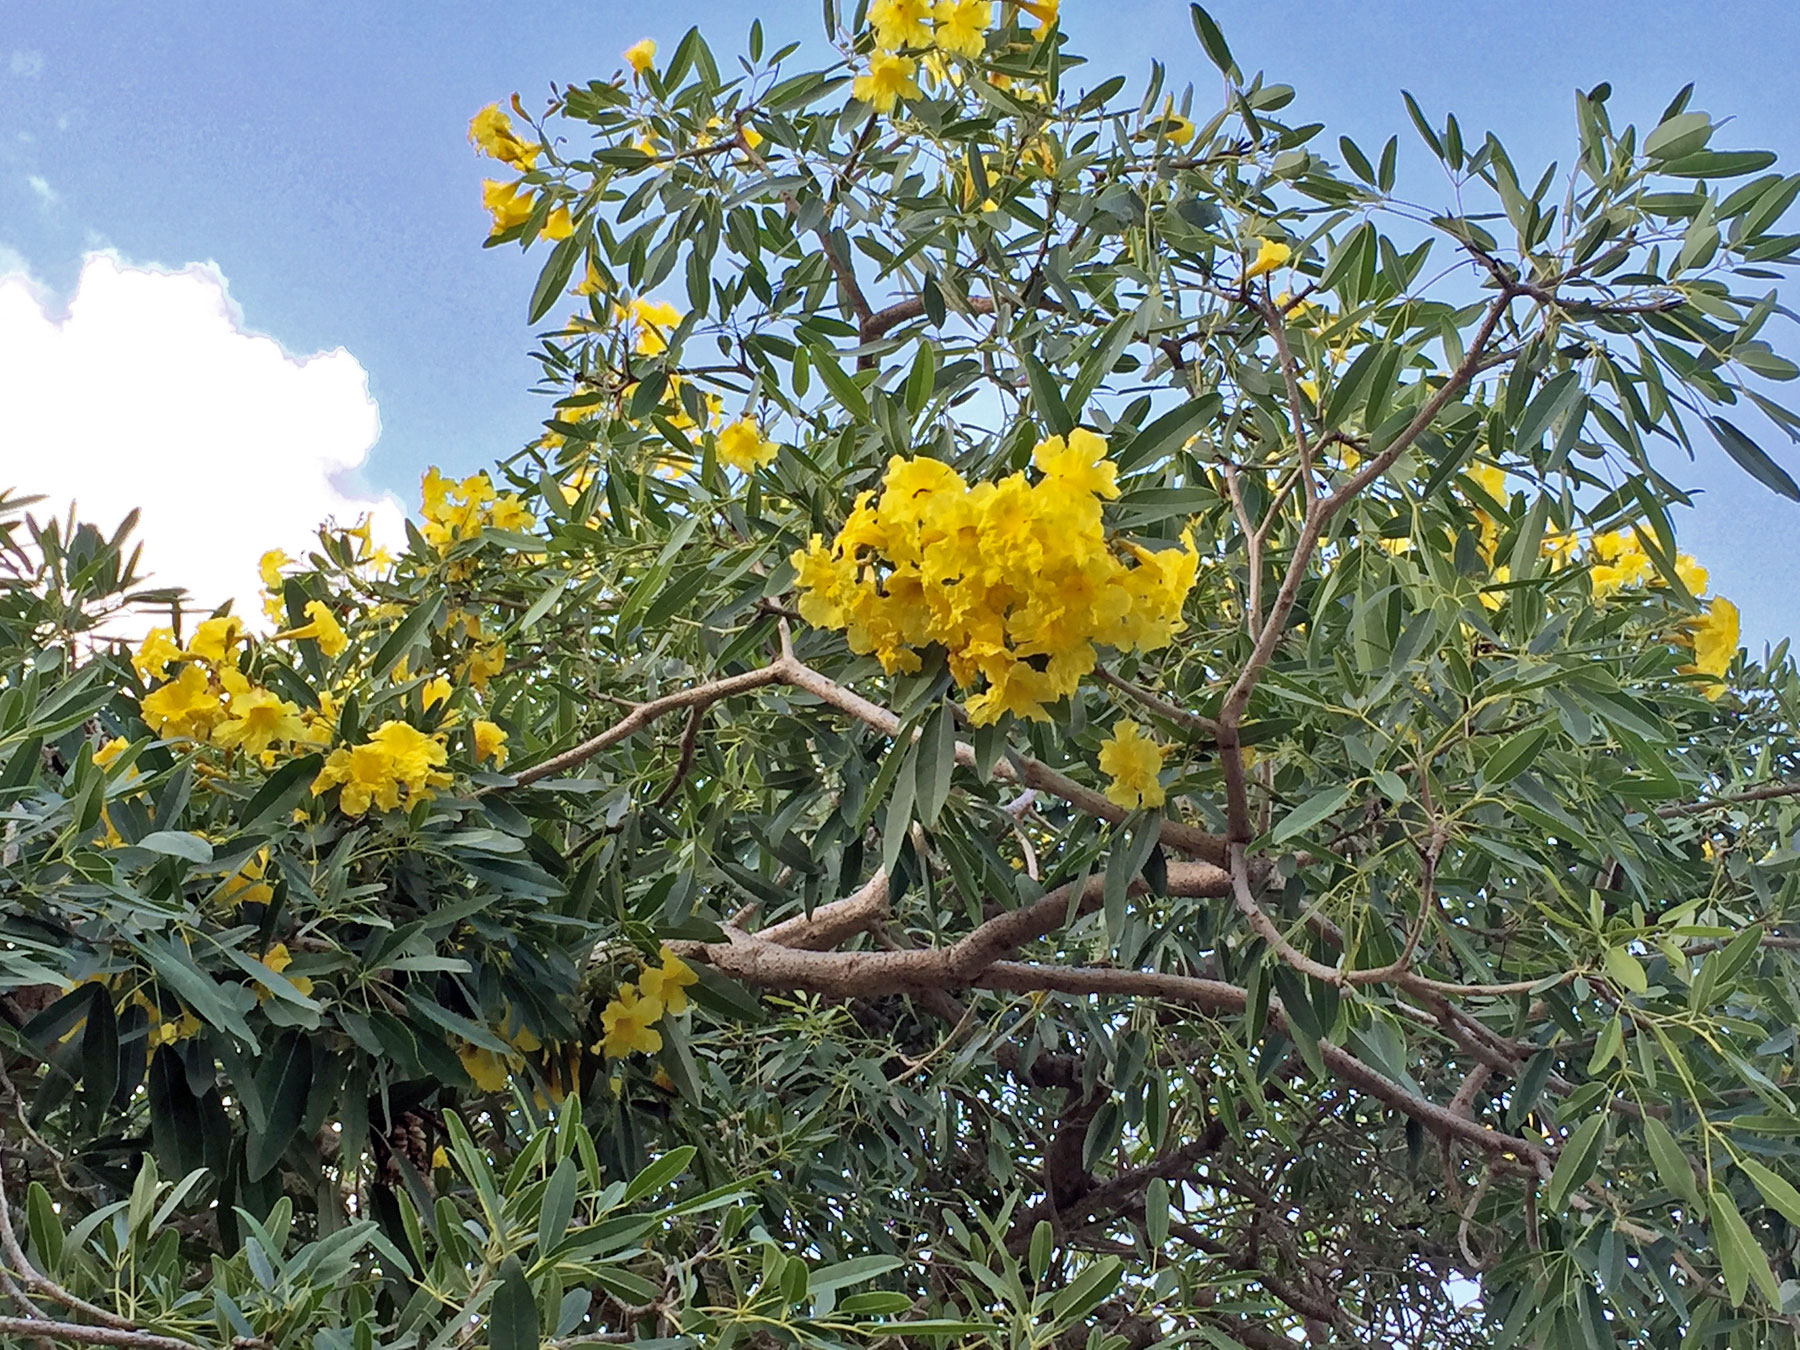 Tabebuia aurea flowering for a second time this year. June 28, 2015. Boca Raton, FL.